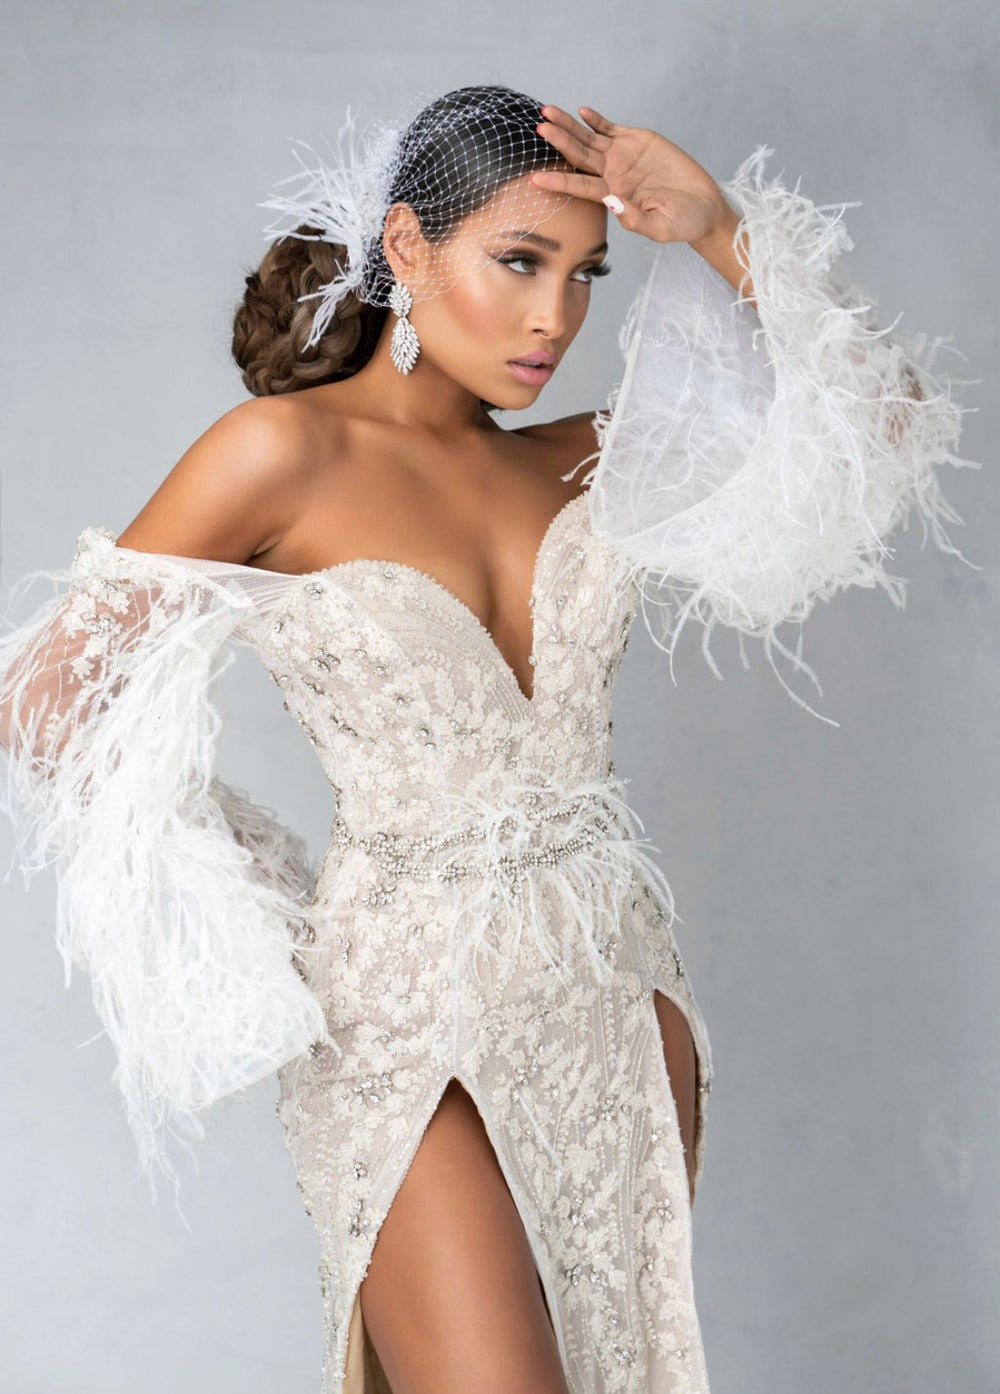 bride wearing feathered gown with christie lauren headpiece and drop earrings